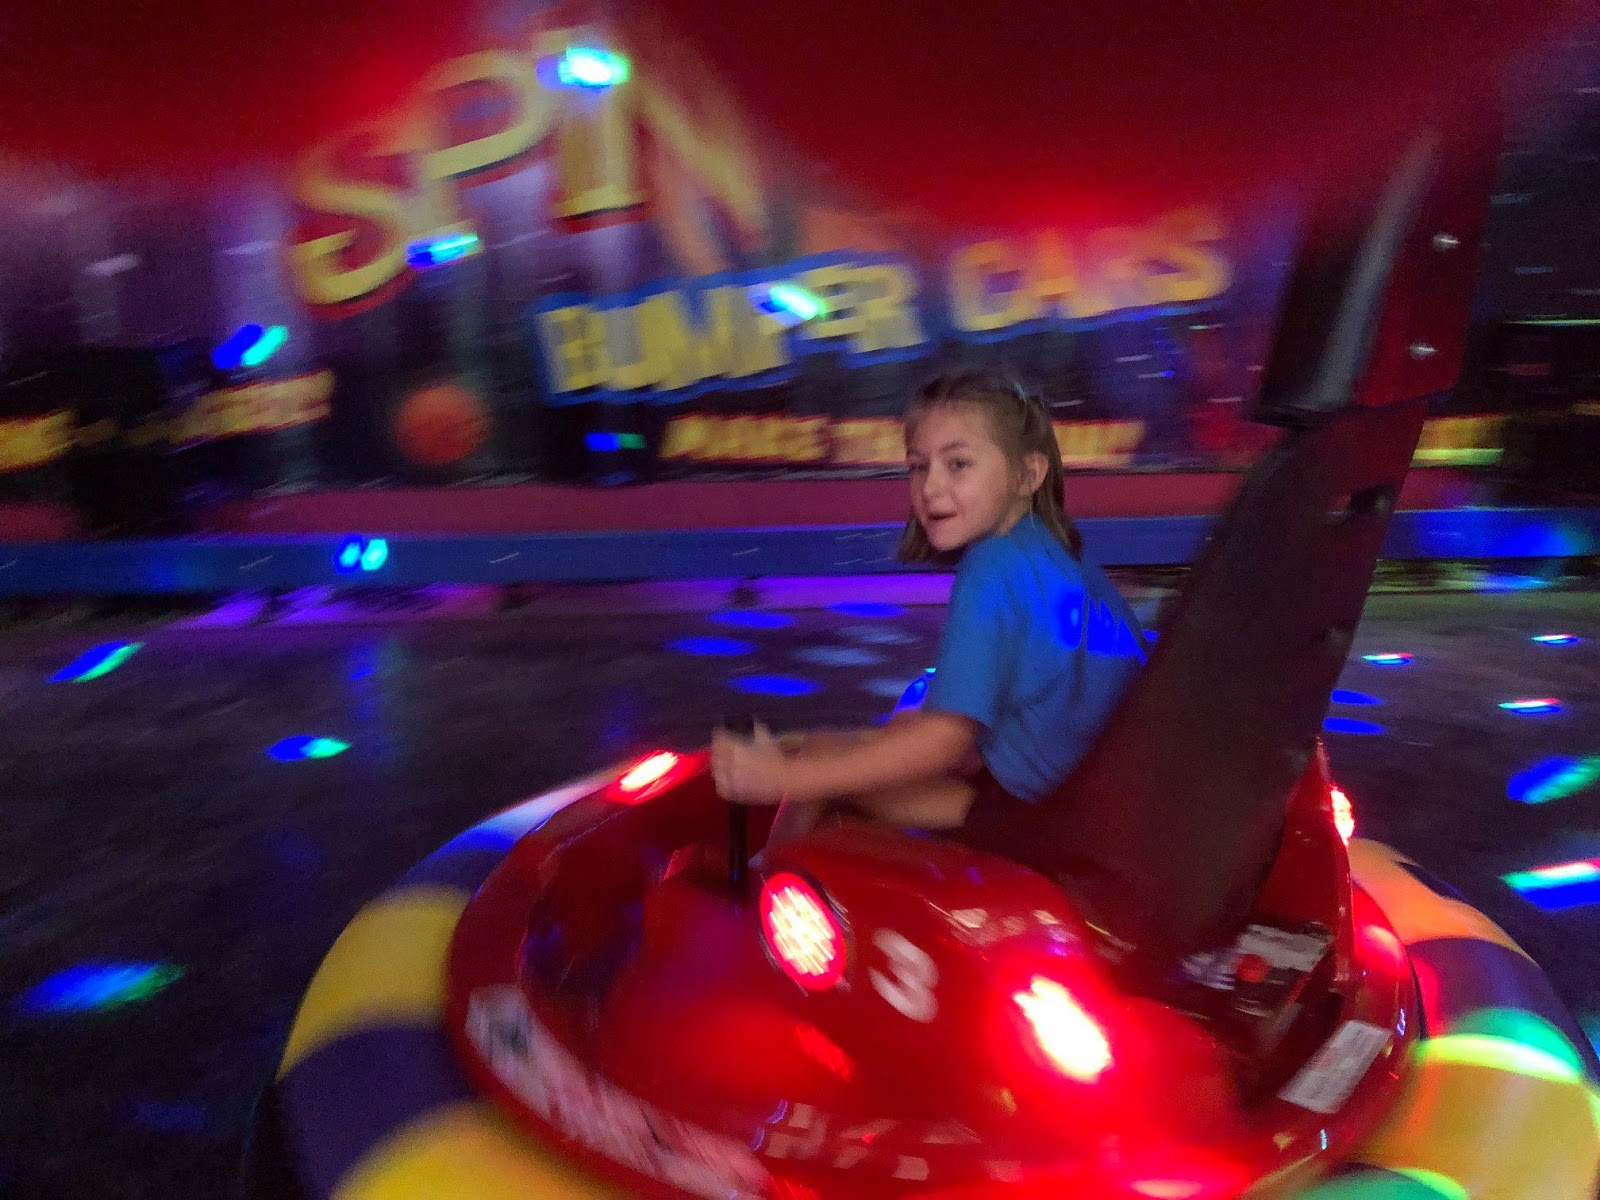 A girl is riding on a bumper car at The Lightning Bug